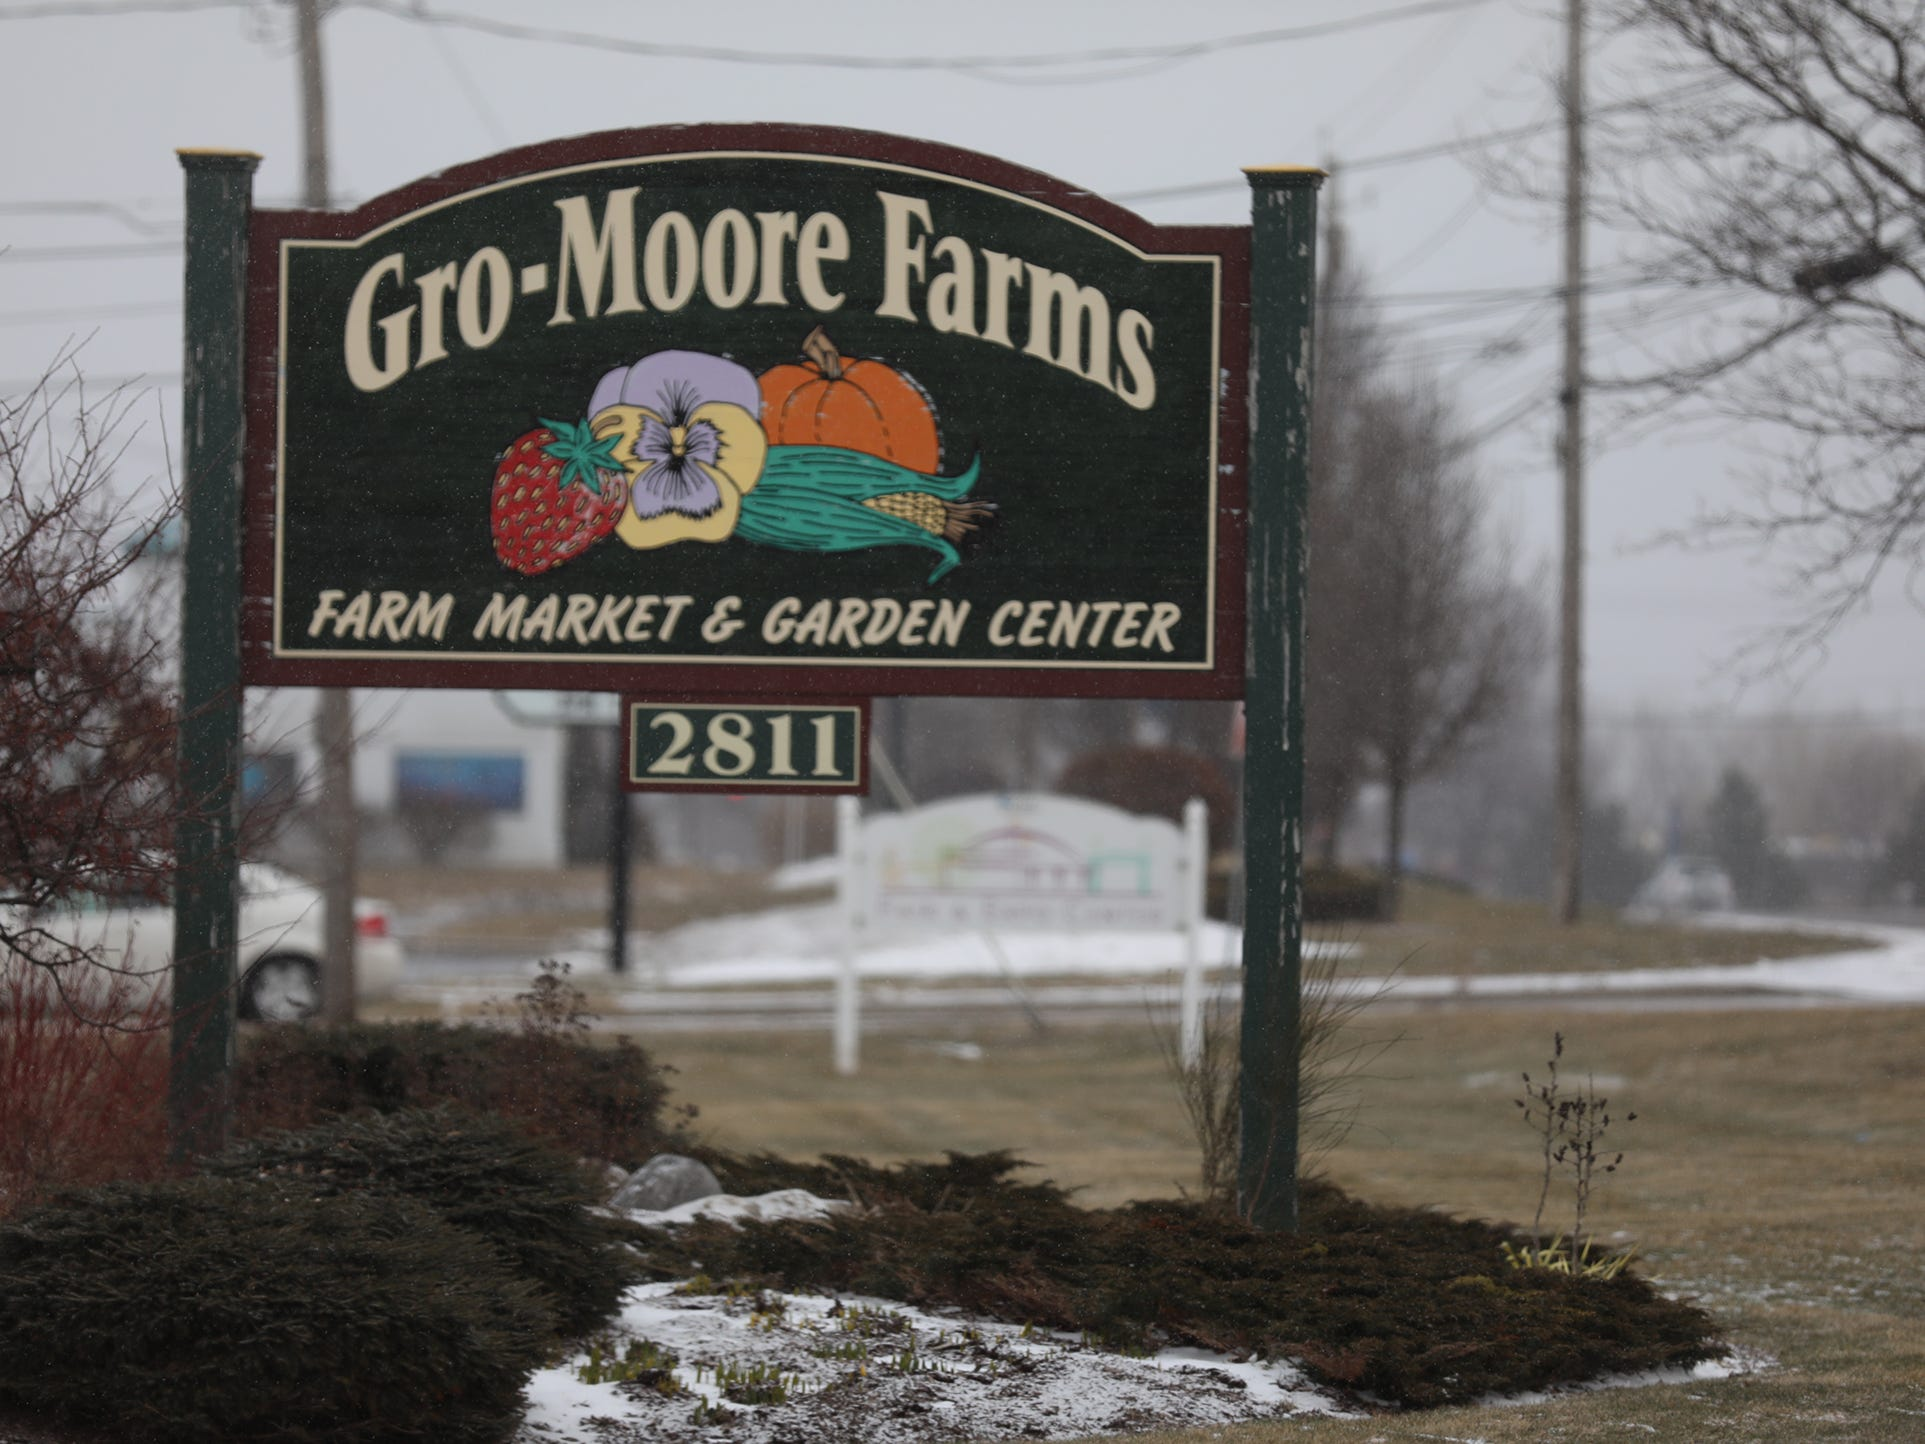 Gro-Moore Farms on East Henrietta Road in Henrietta is closing.